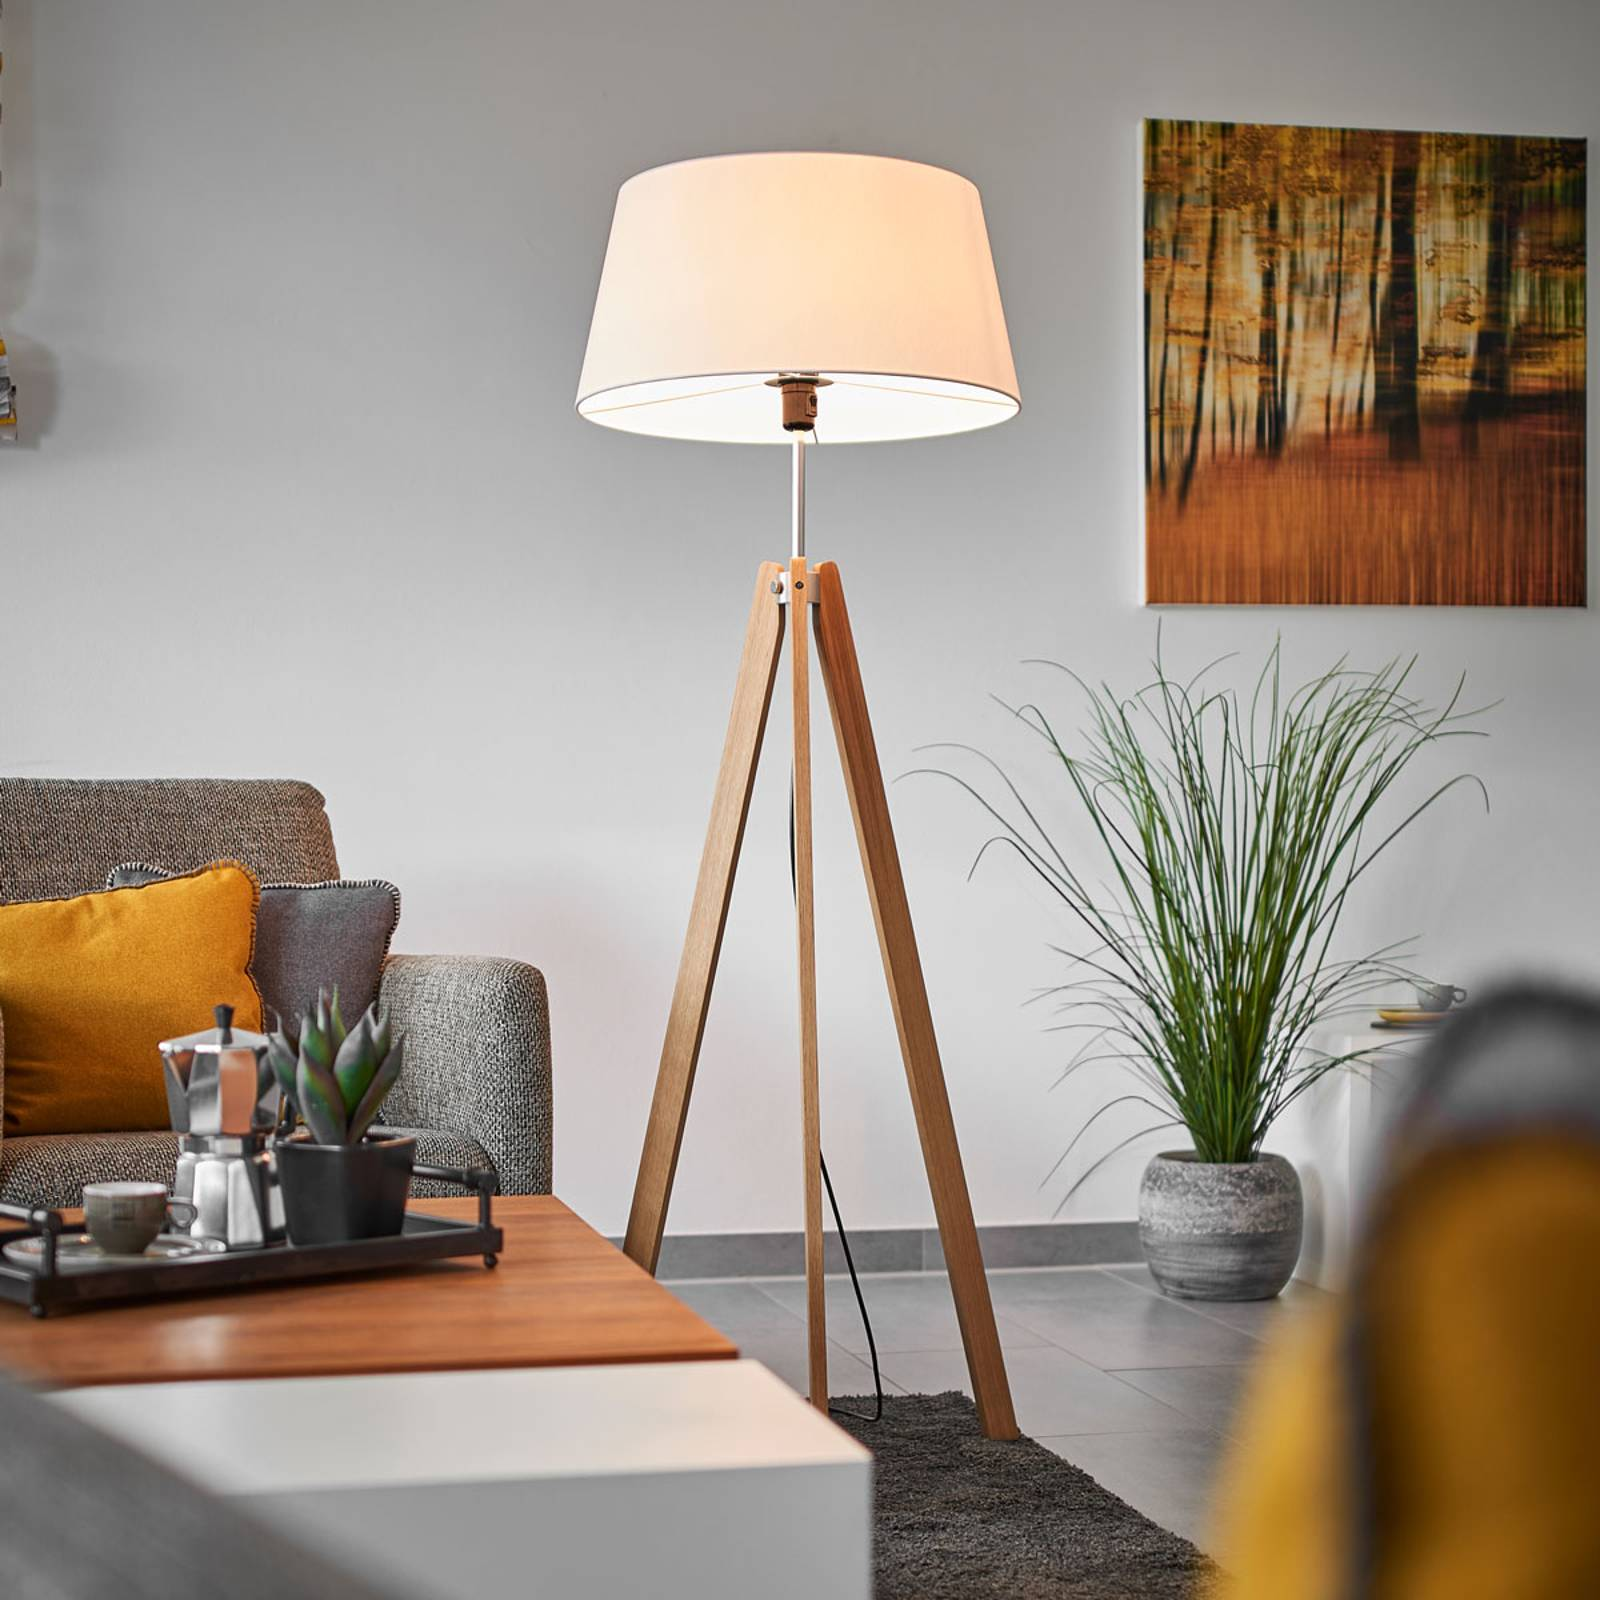 Textile floor lamp Thea with an oak frame from Lucande